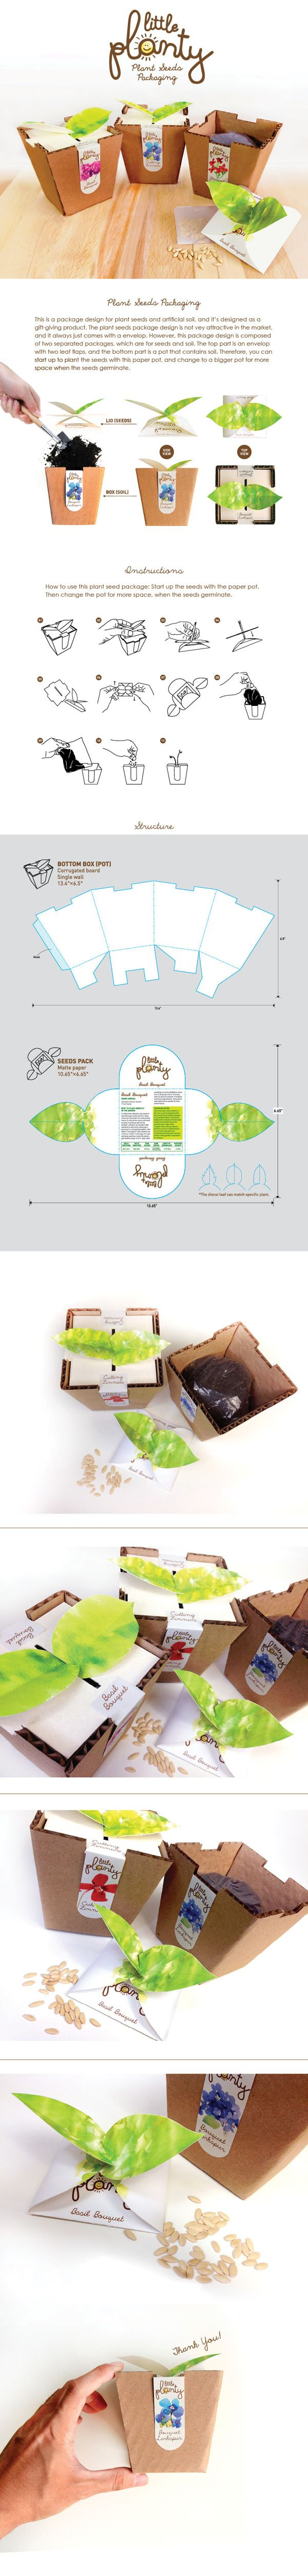 Little Planty- Plant seeds package design by CHENGWEN fung, via Behance PD